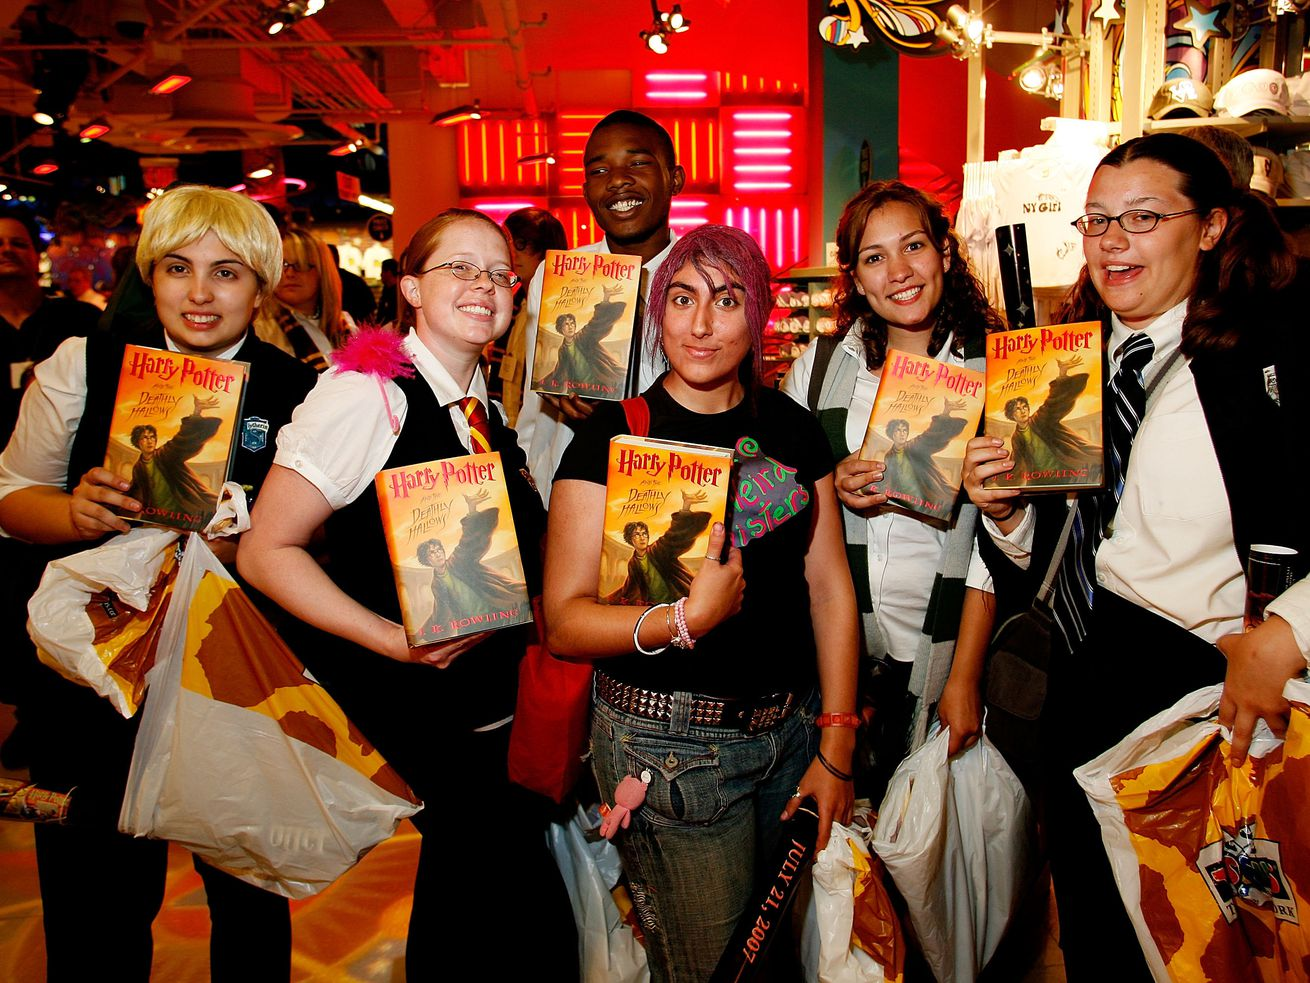 Harry Potter fans hold copies of Harry Potter and the Deathly Hallows during a release event in 2007.